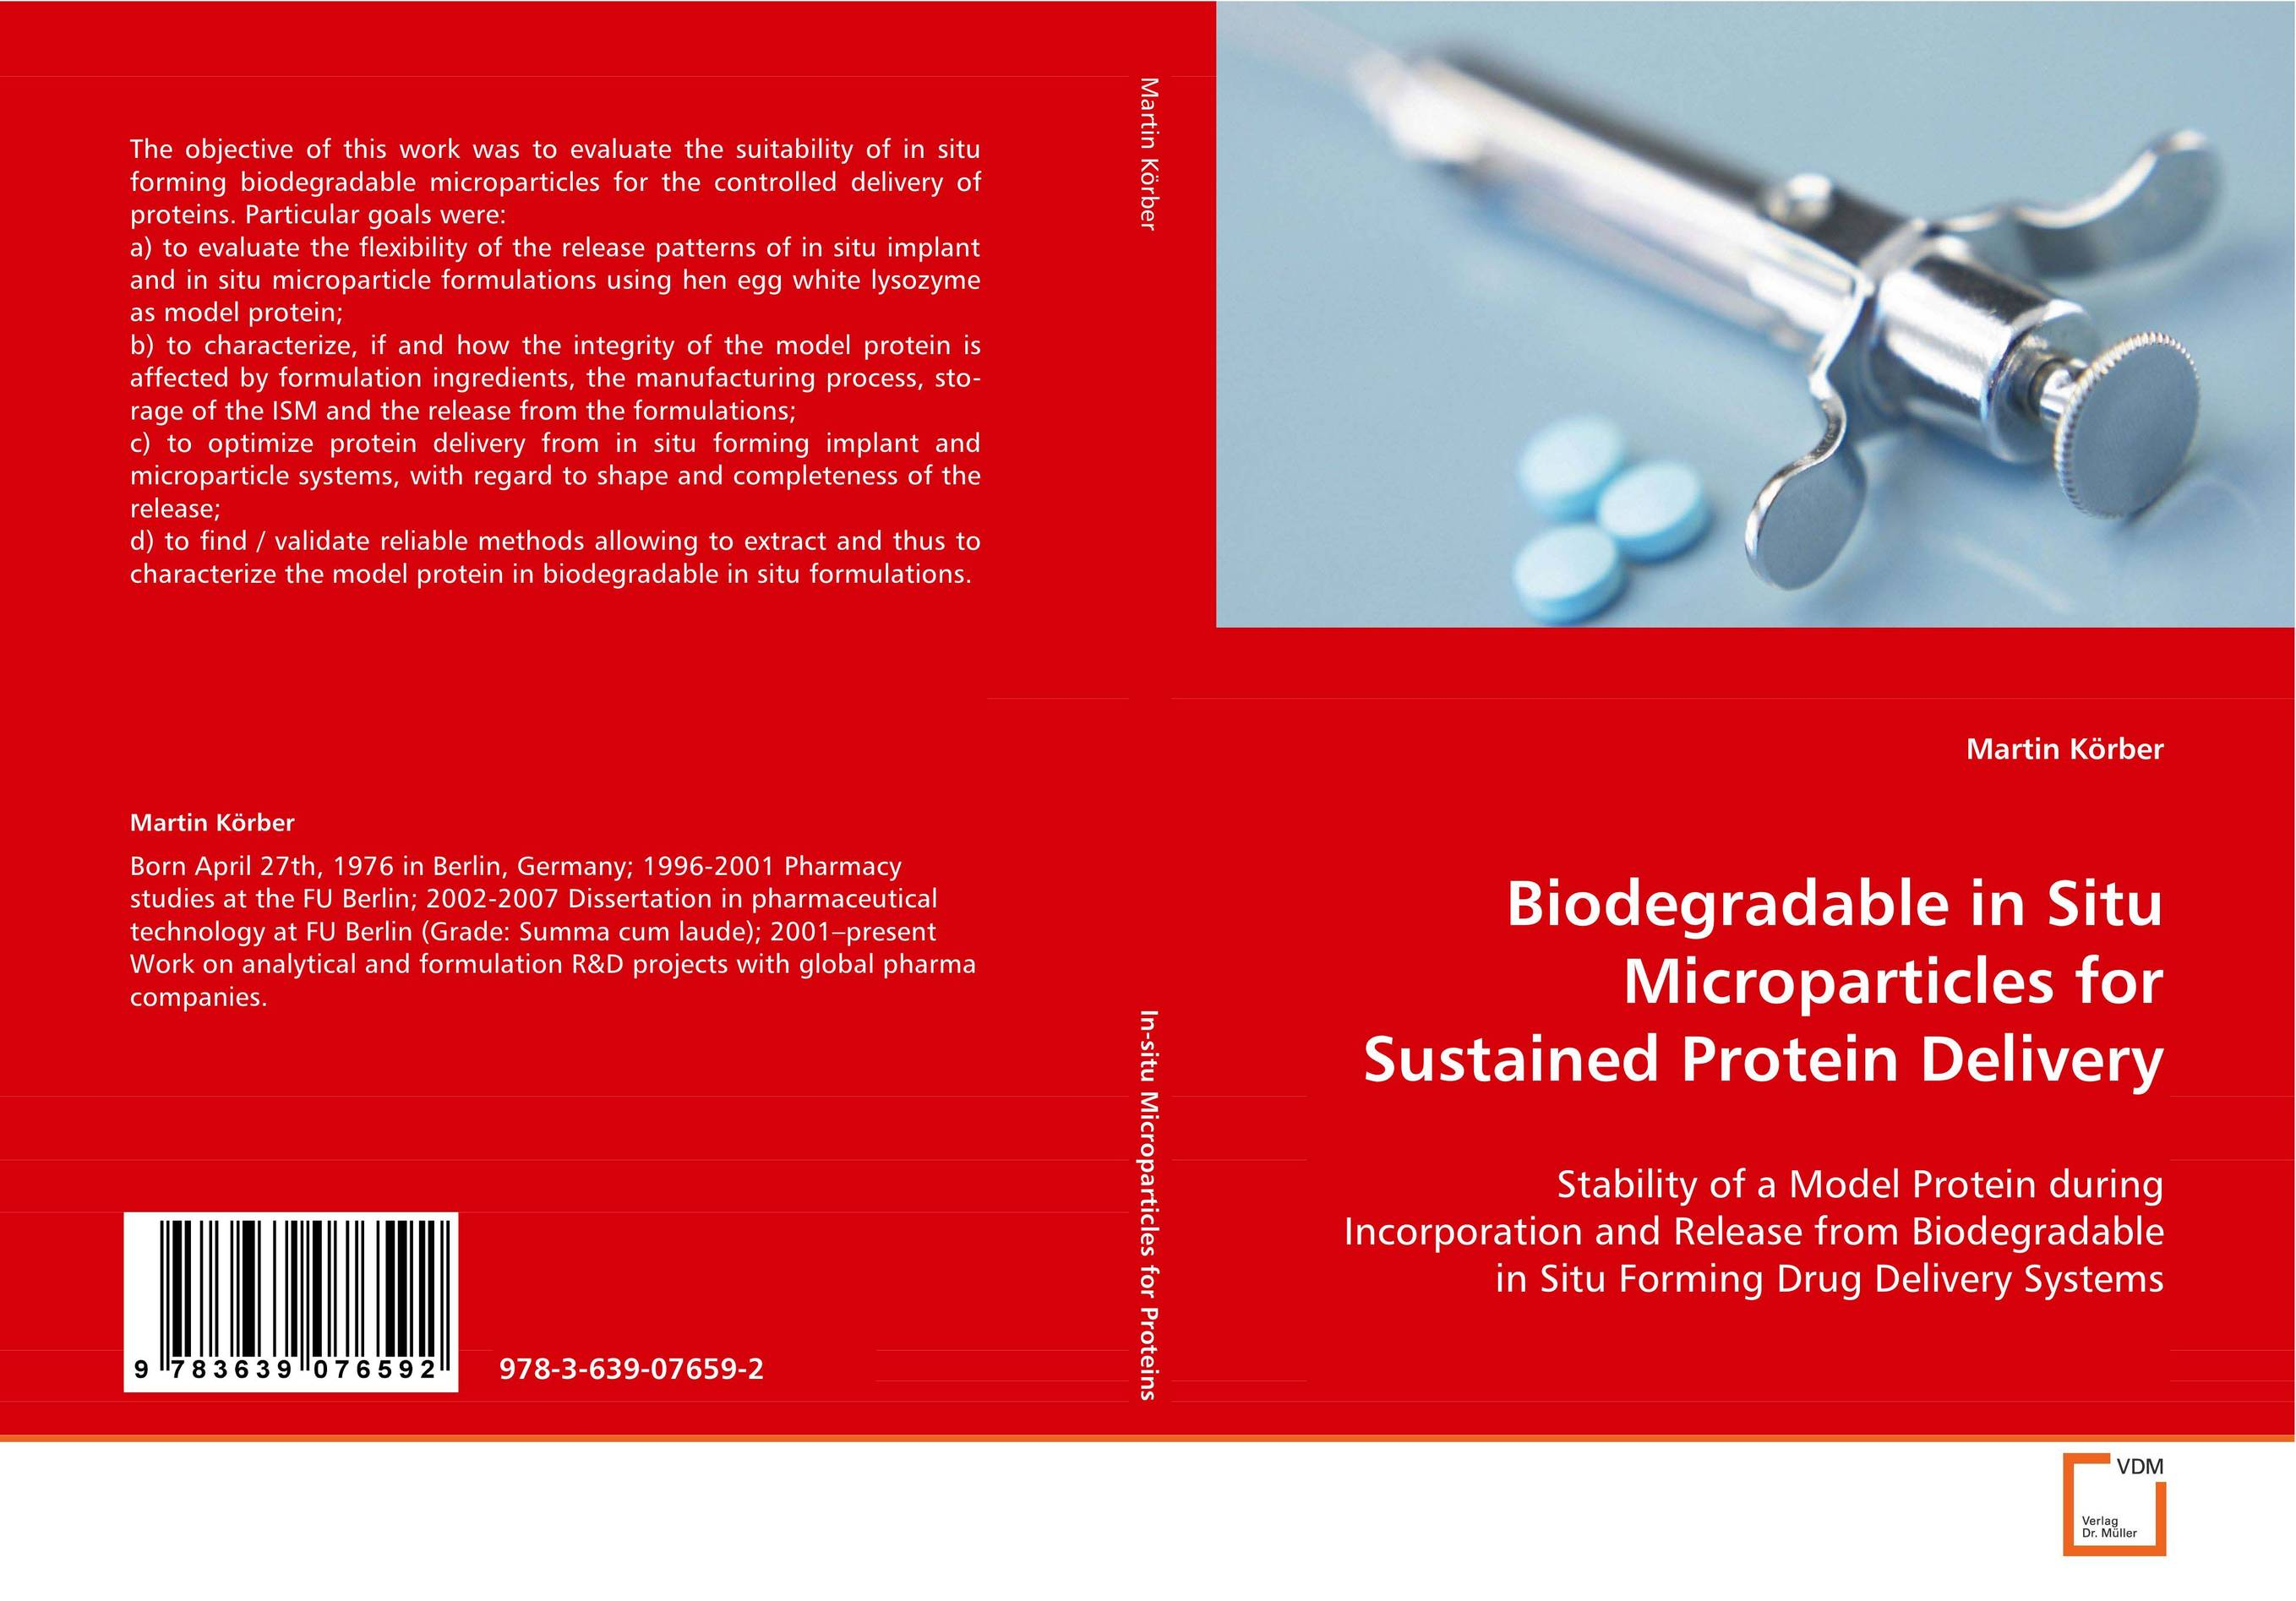 Biodegradable in Situ Microparticles for Sustained Protein Delivery the release